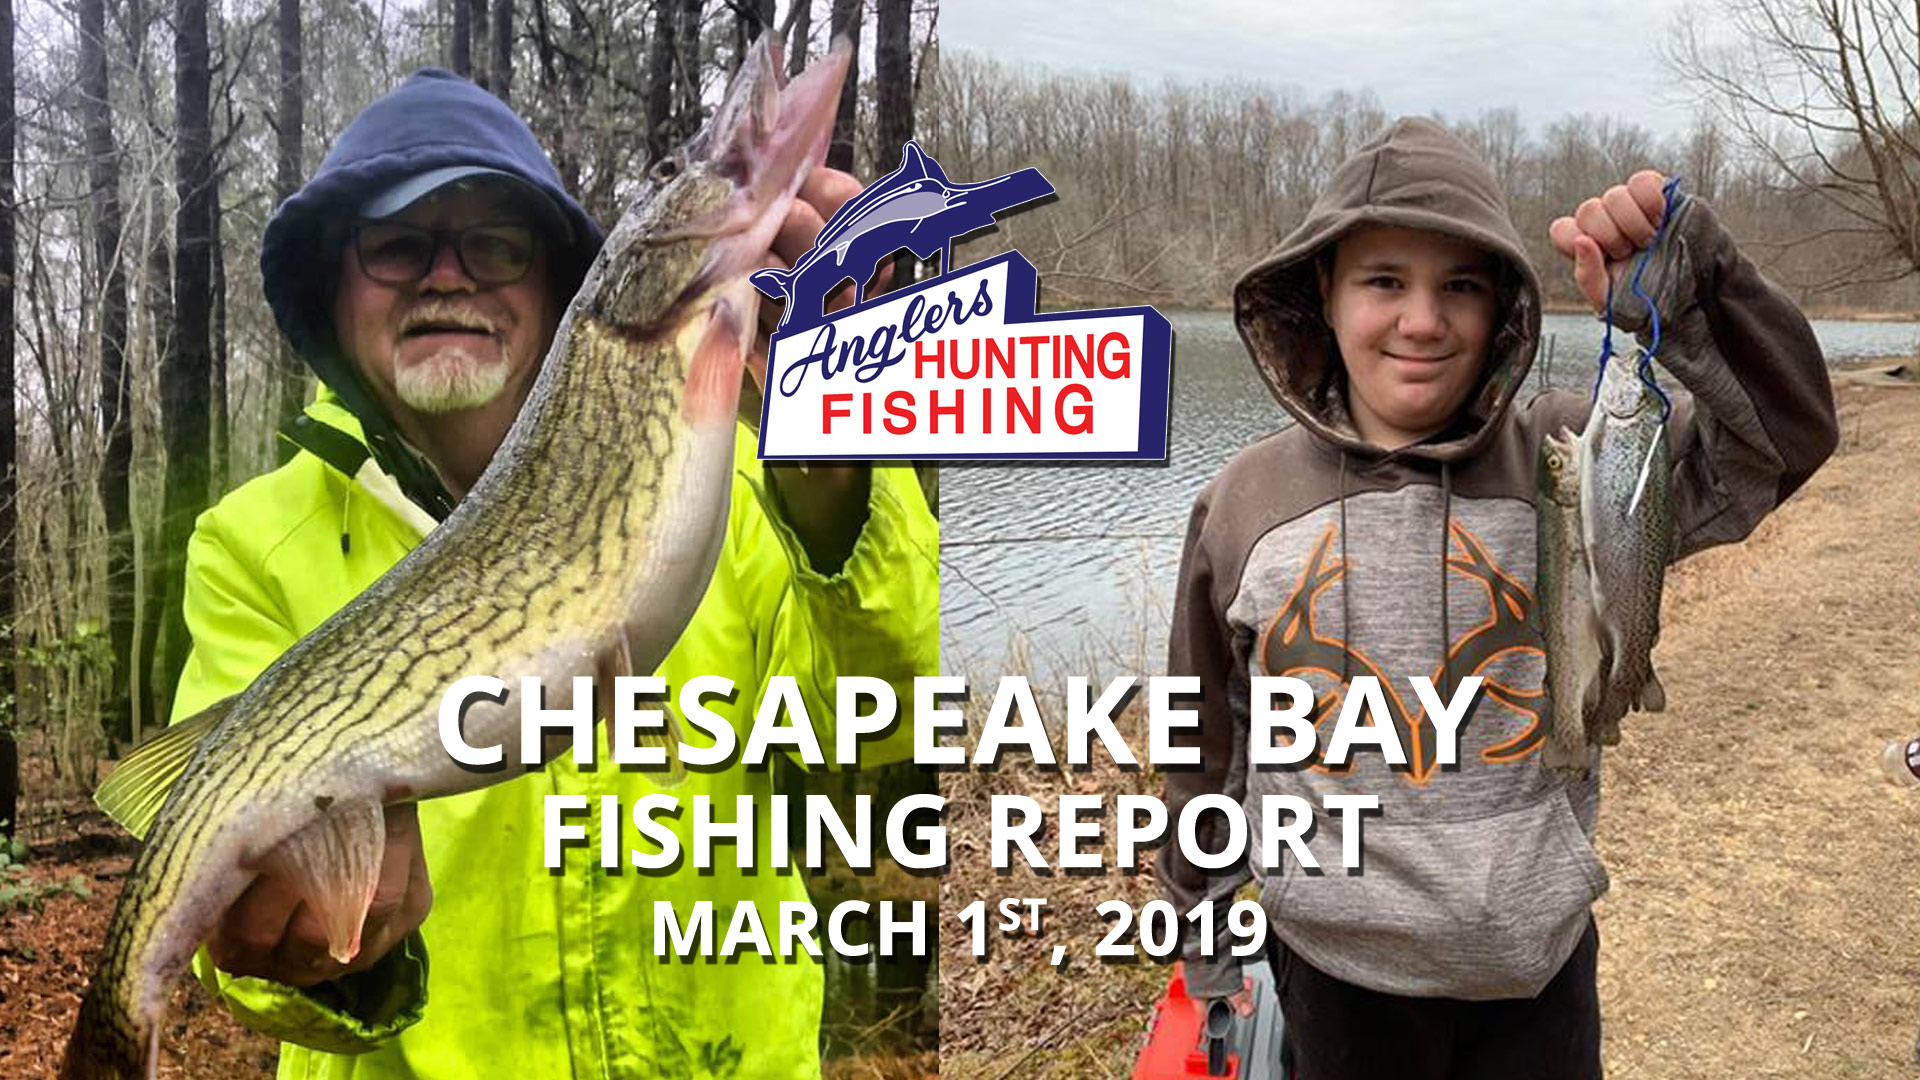 Chesapeake Bay Fishing Report - March 1st, 2019